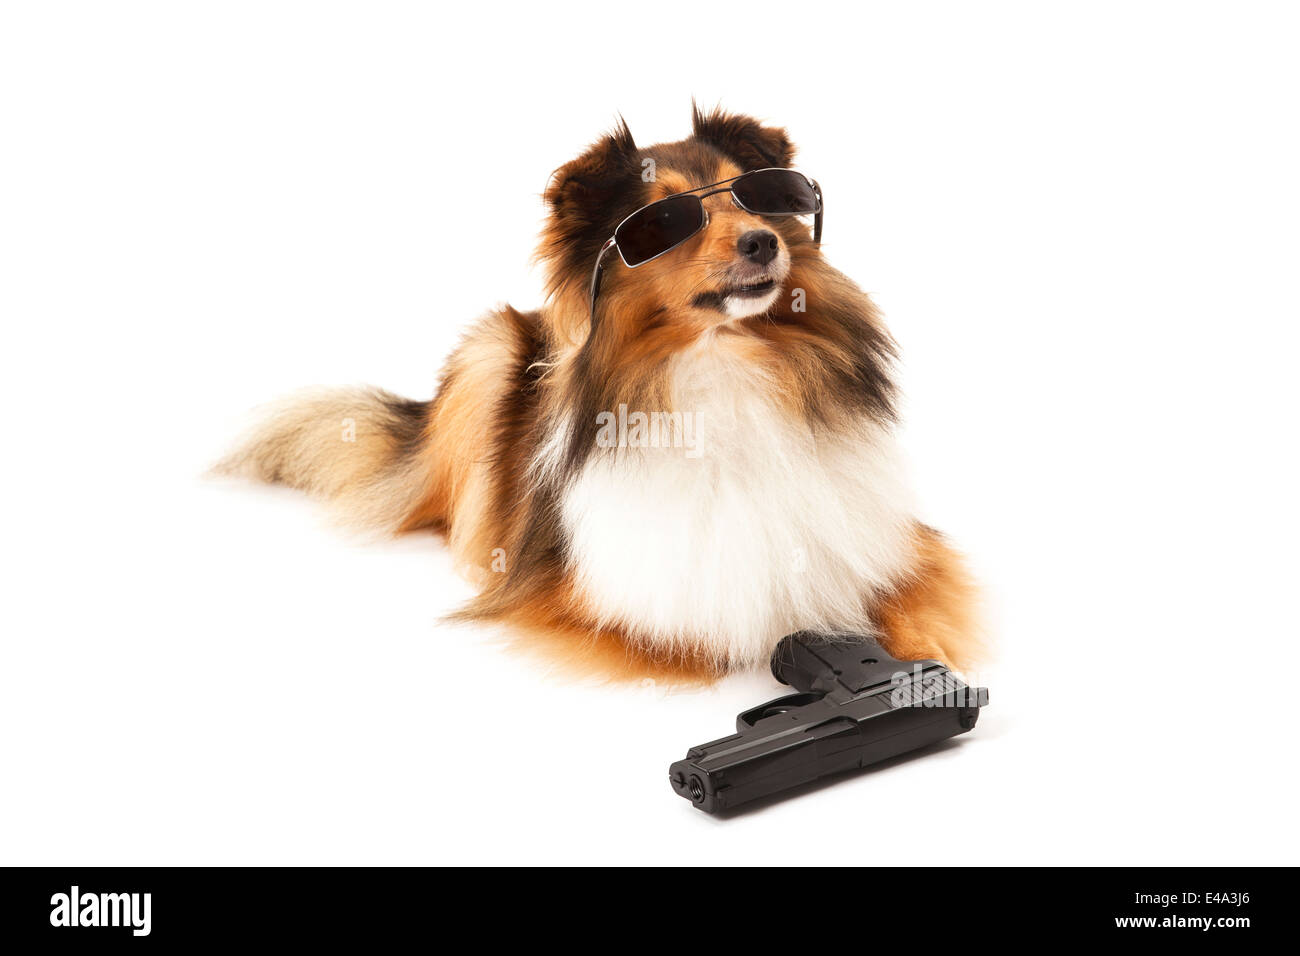 Portrait of dog with sunglasses and handgun over white background - Stock Image